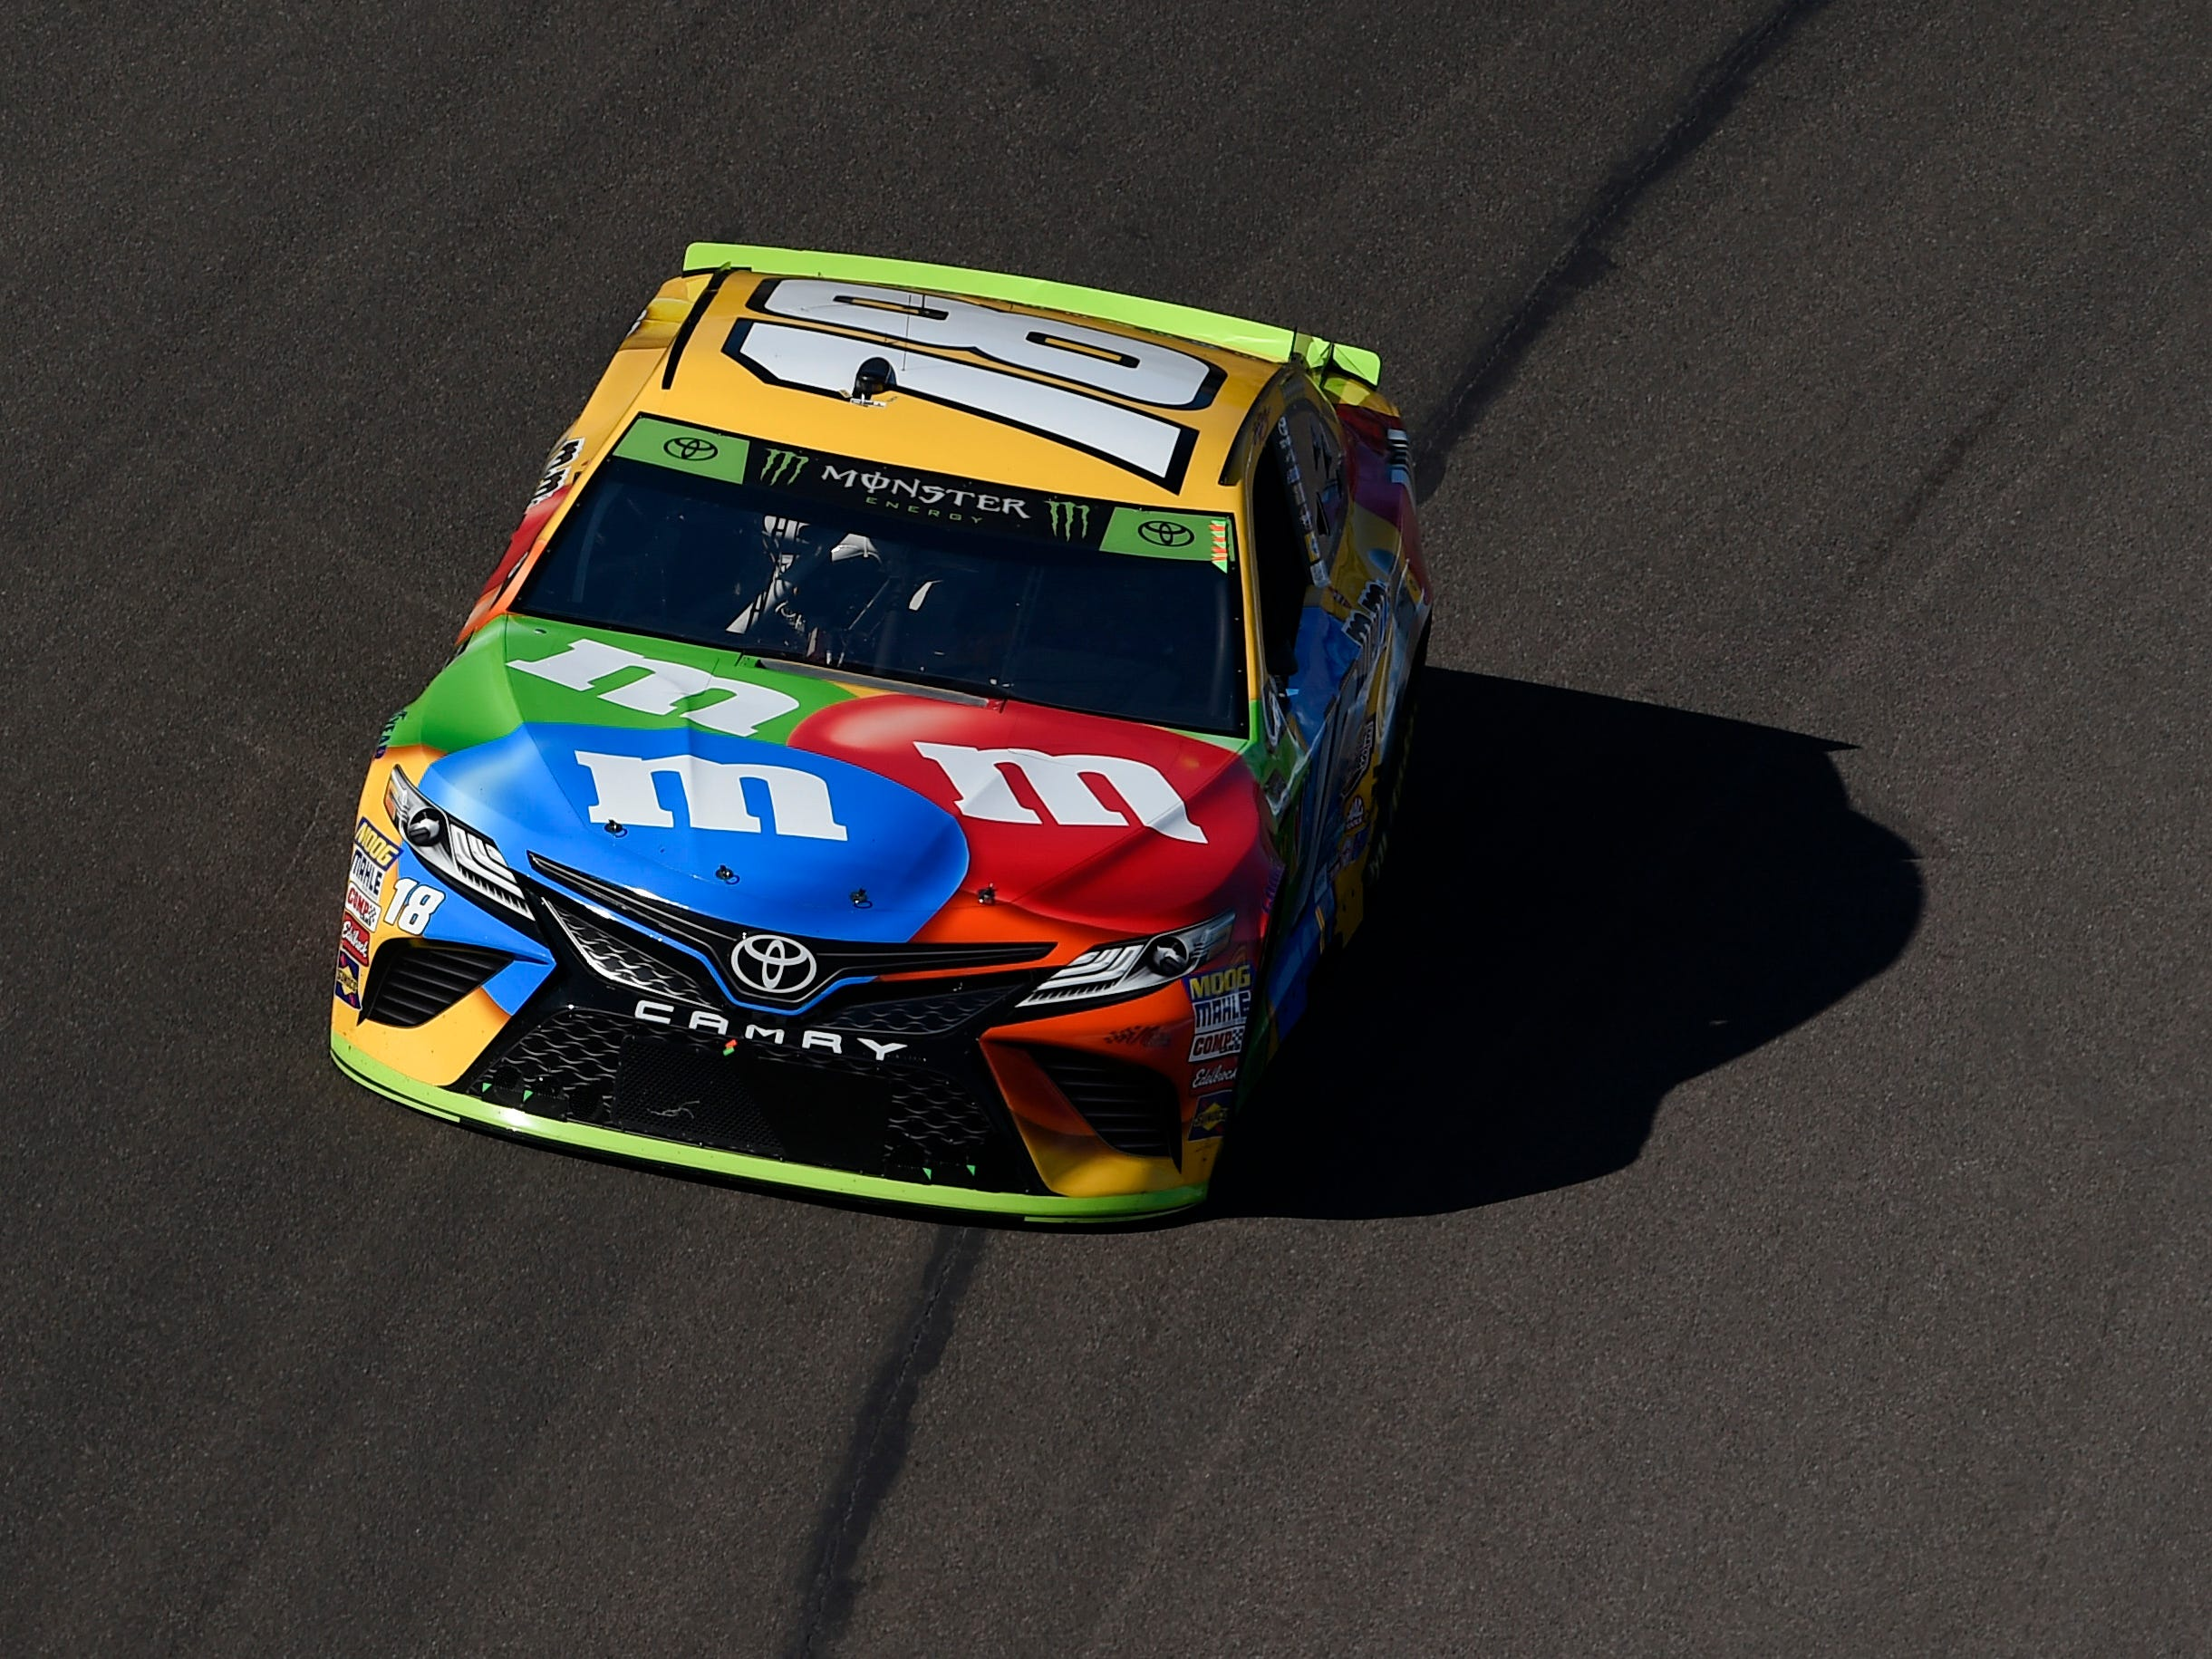 Nov 11, 2018; Avondale, AZ, USA; Monster Energy NASCAR Cup Series driver Kyle Busch (18) during the Can-Am 500 at ISM Raceway. Mandatory Credit: Kelvin Kuo-USA TODAY Sports